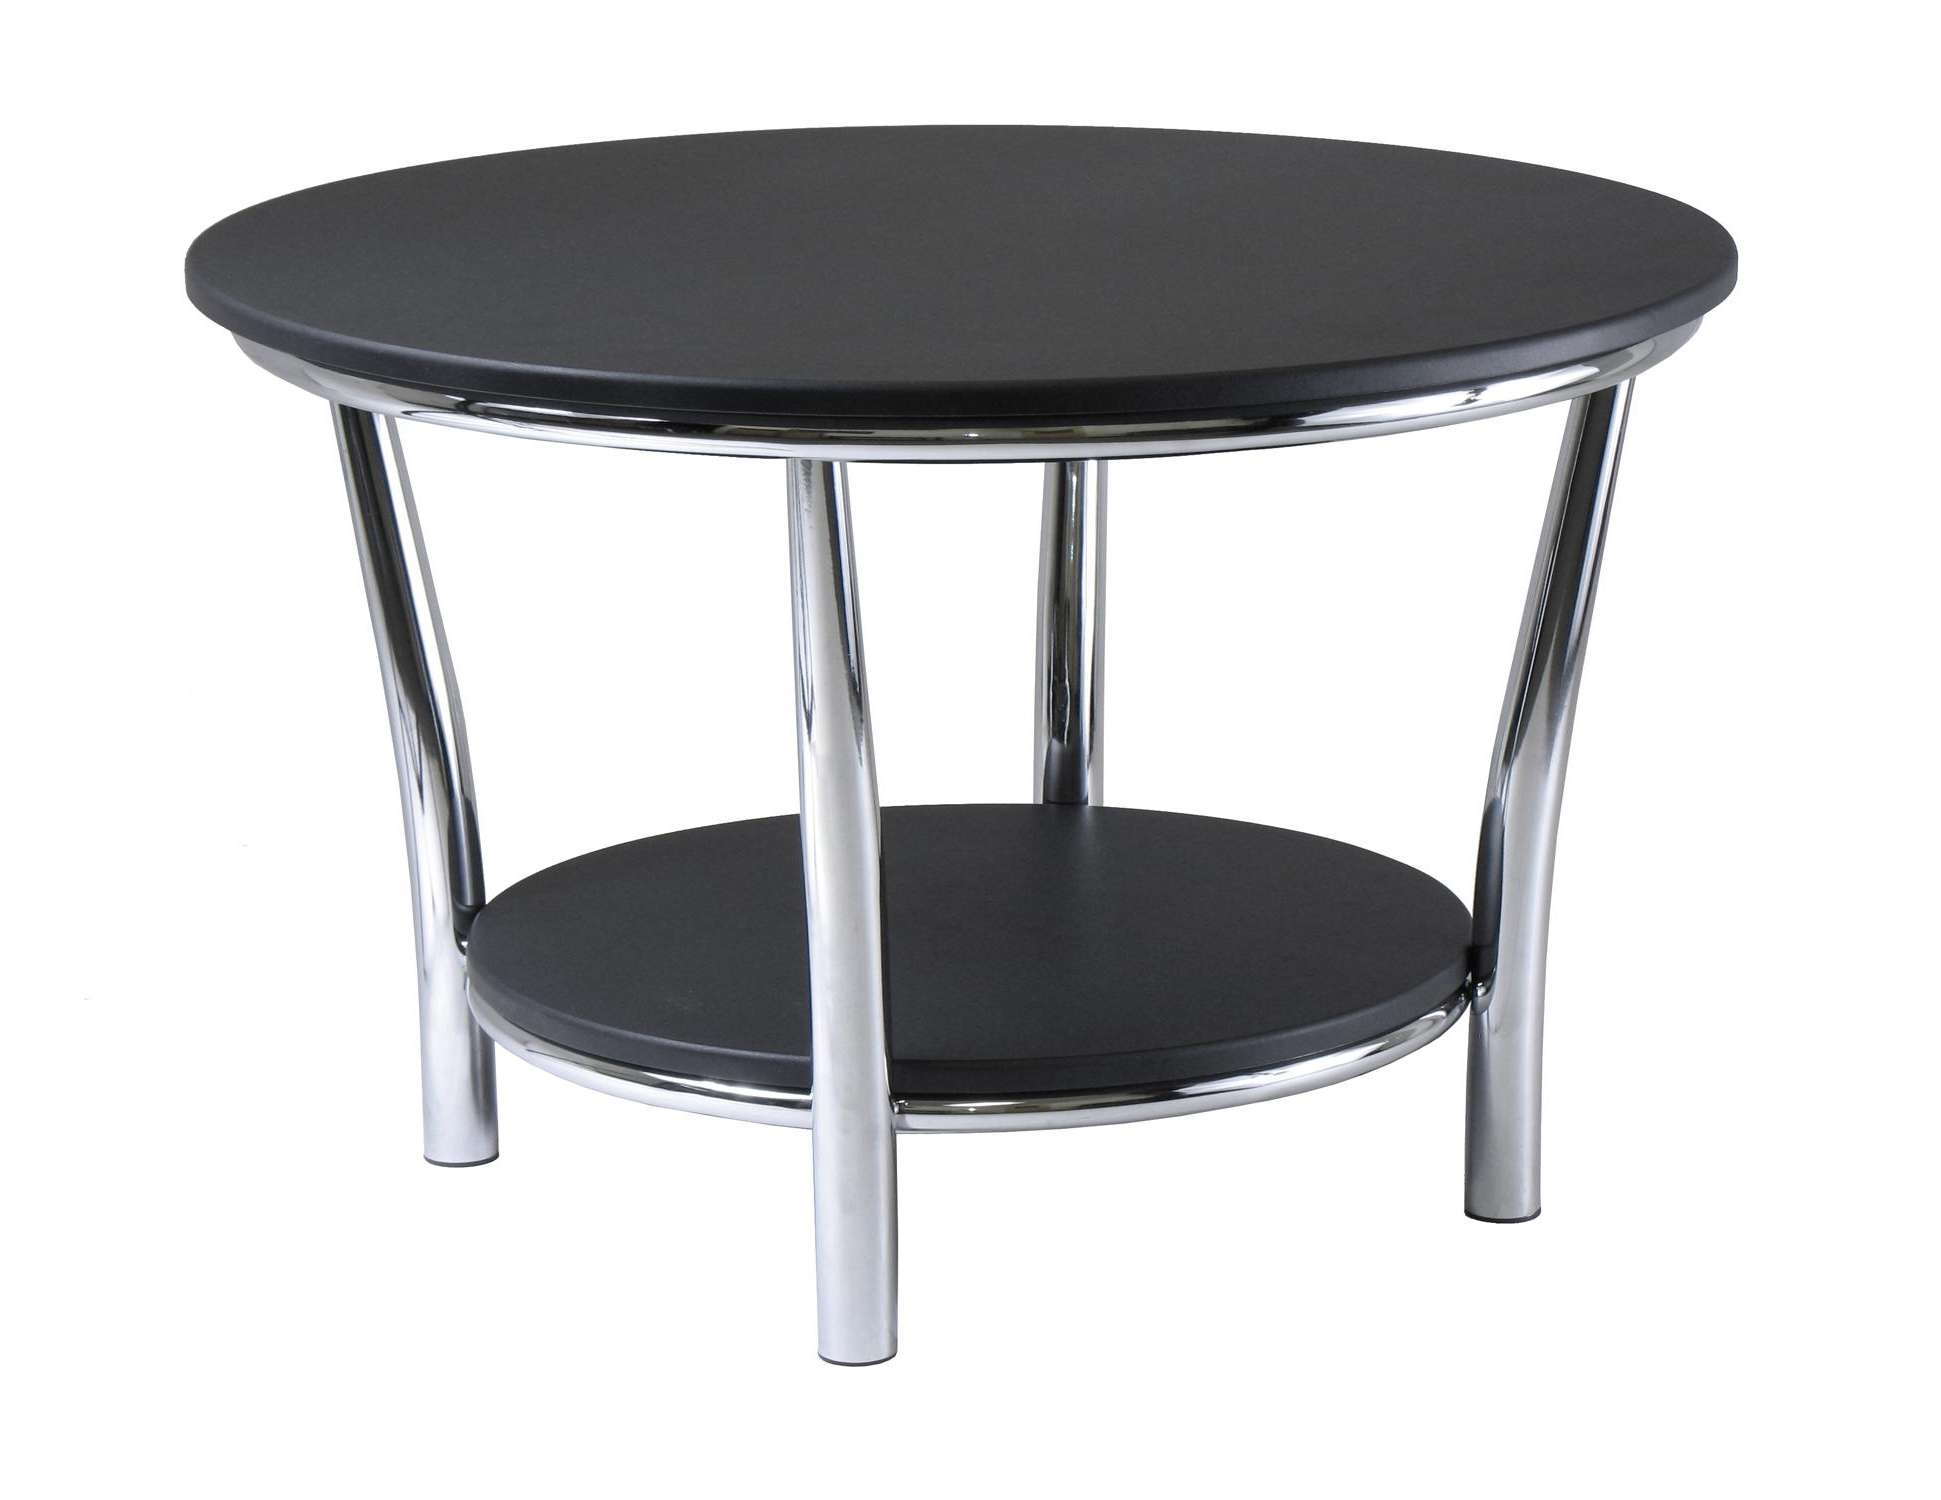 Well Liked Oval Black Glass Coffee Tables Intended For Coffee Tables : Table Small Glass Coffee Side Design Cocktail (View 19 of 20)